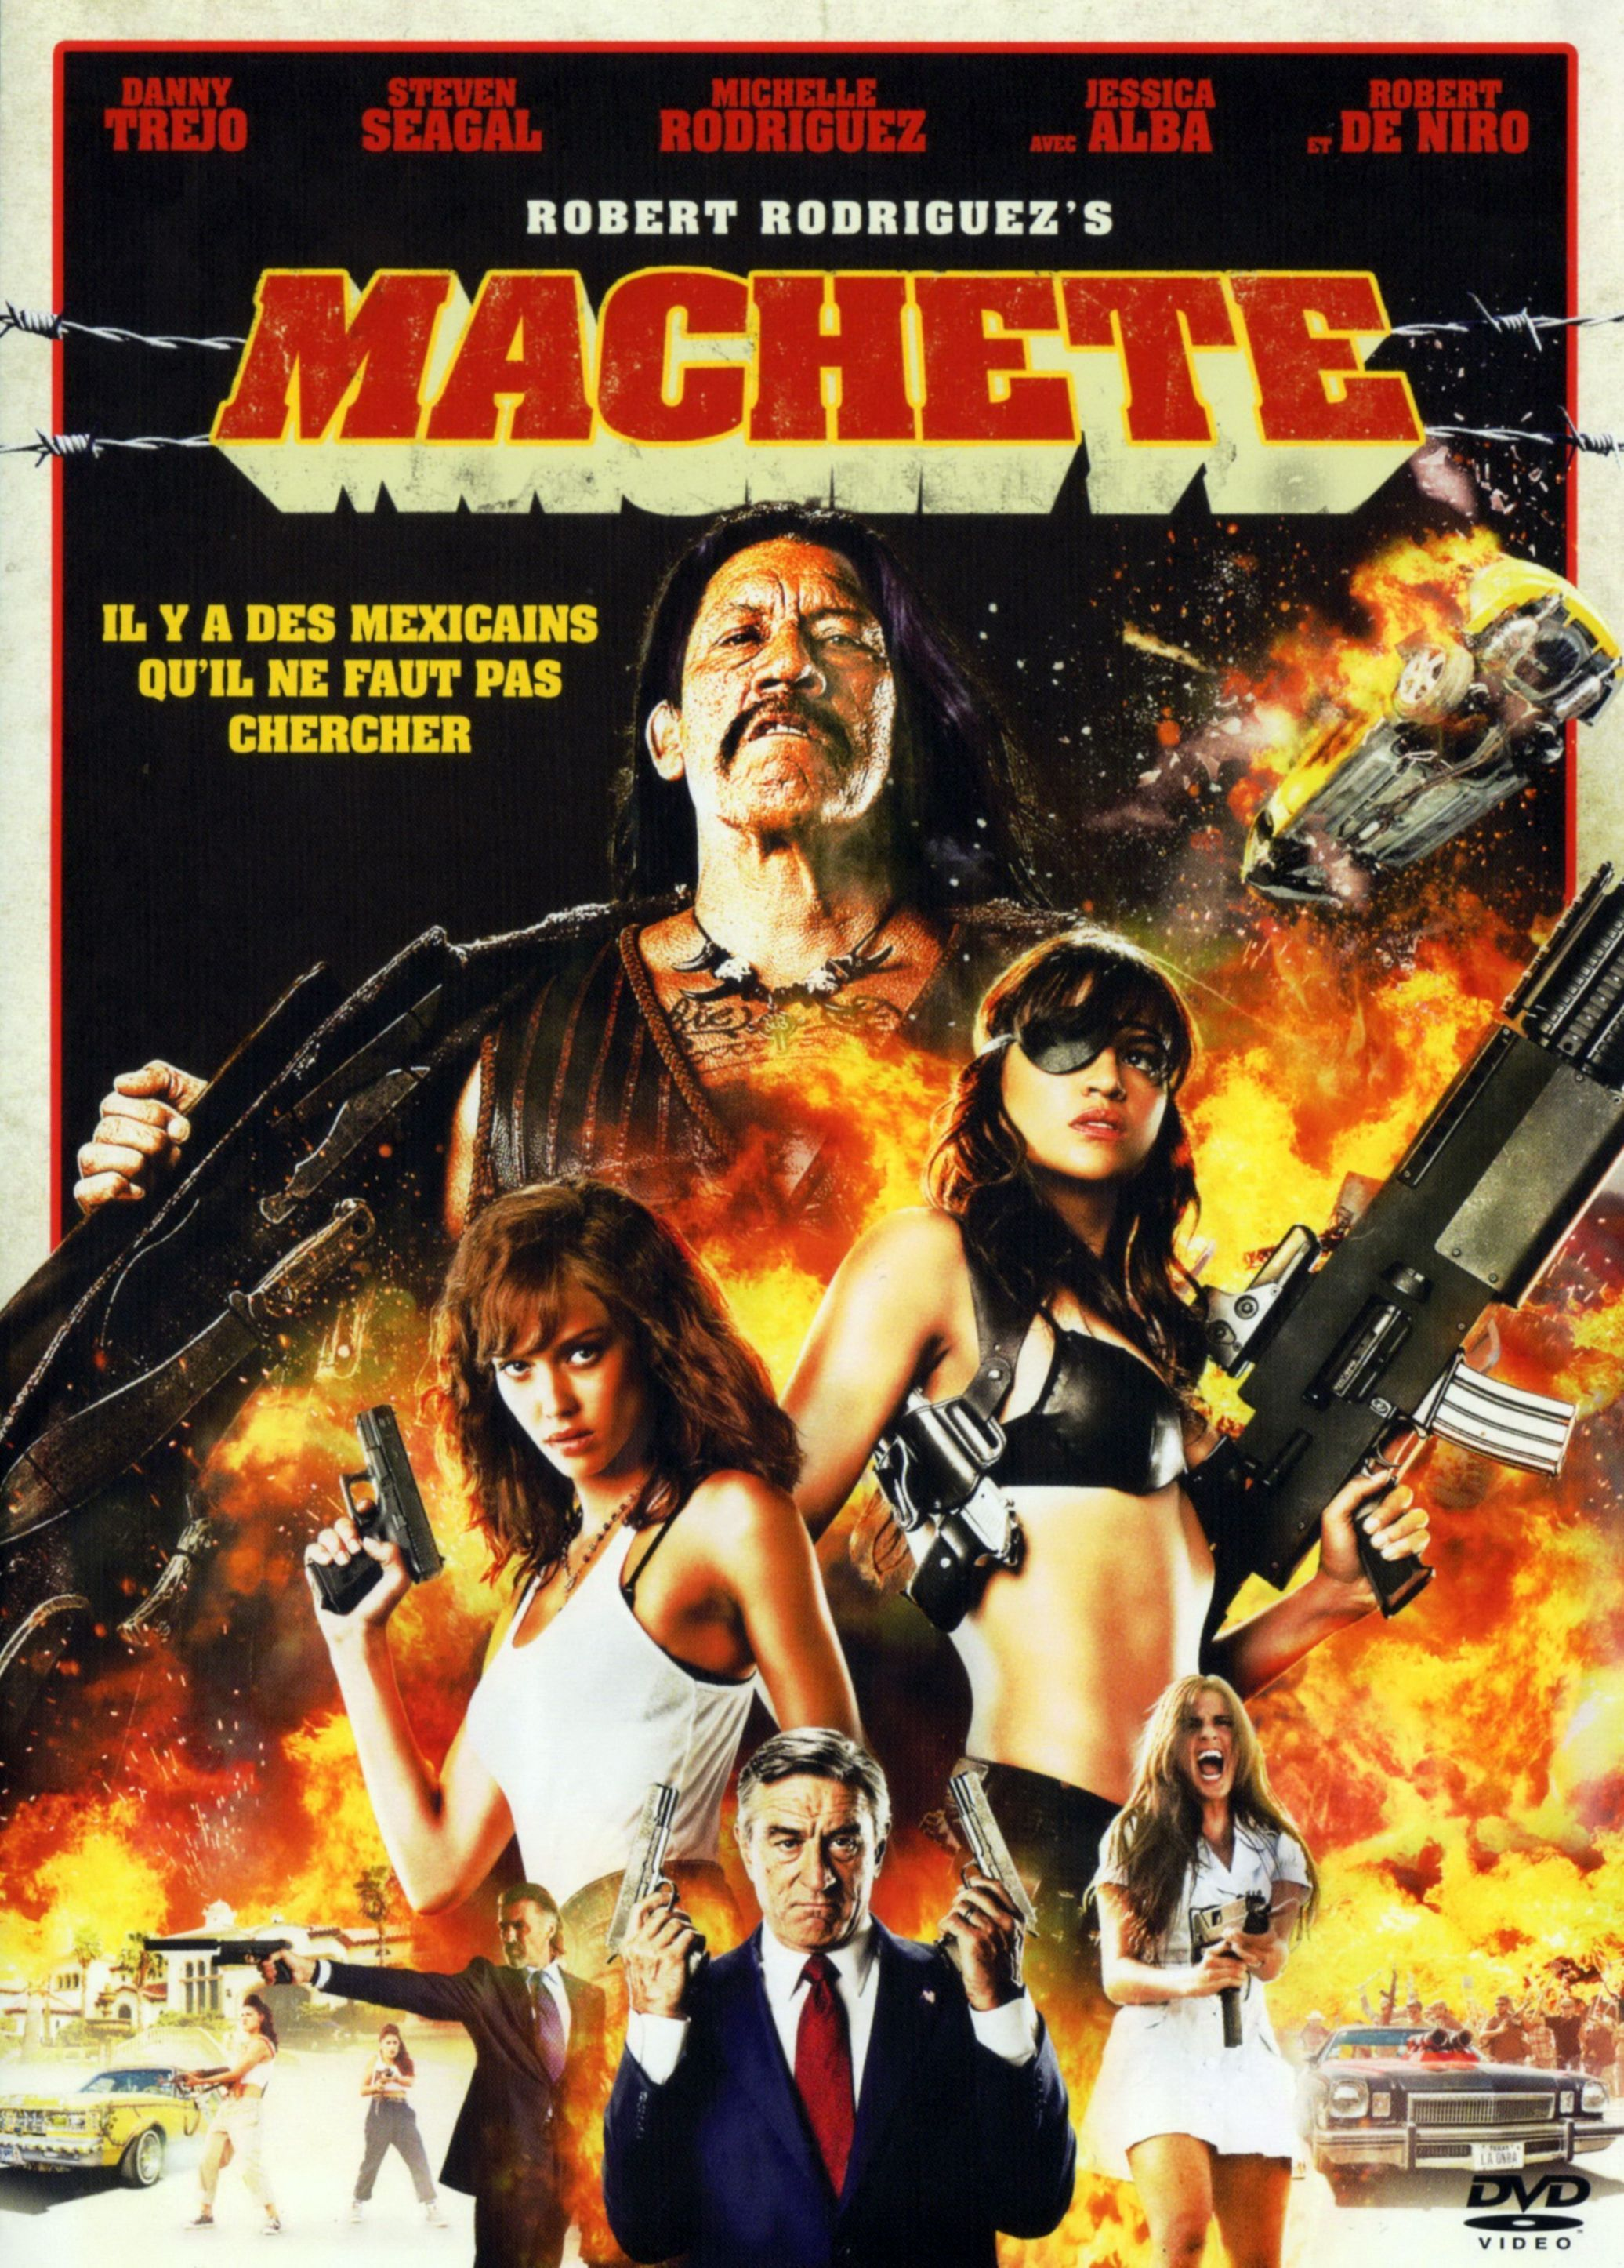 Des Films En Streaming Machete Film Complet En Streaming Vf Film Complet